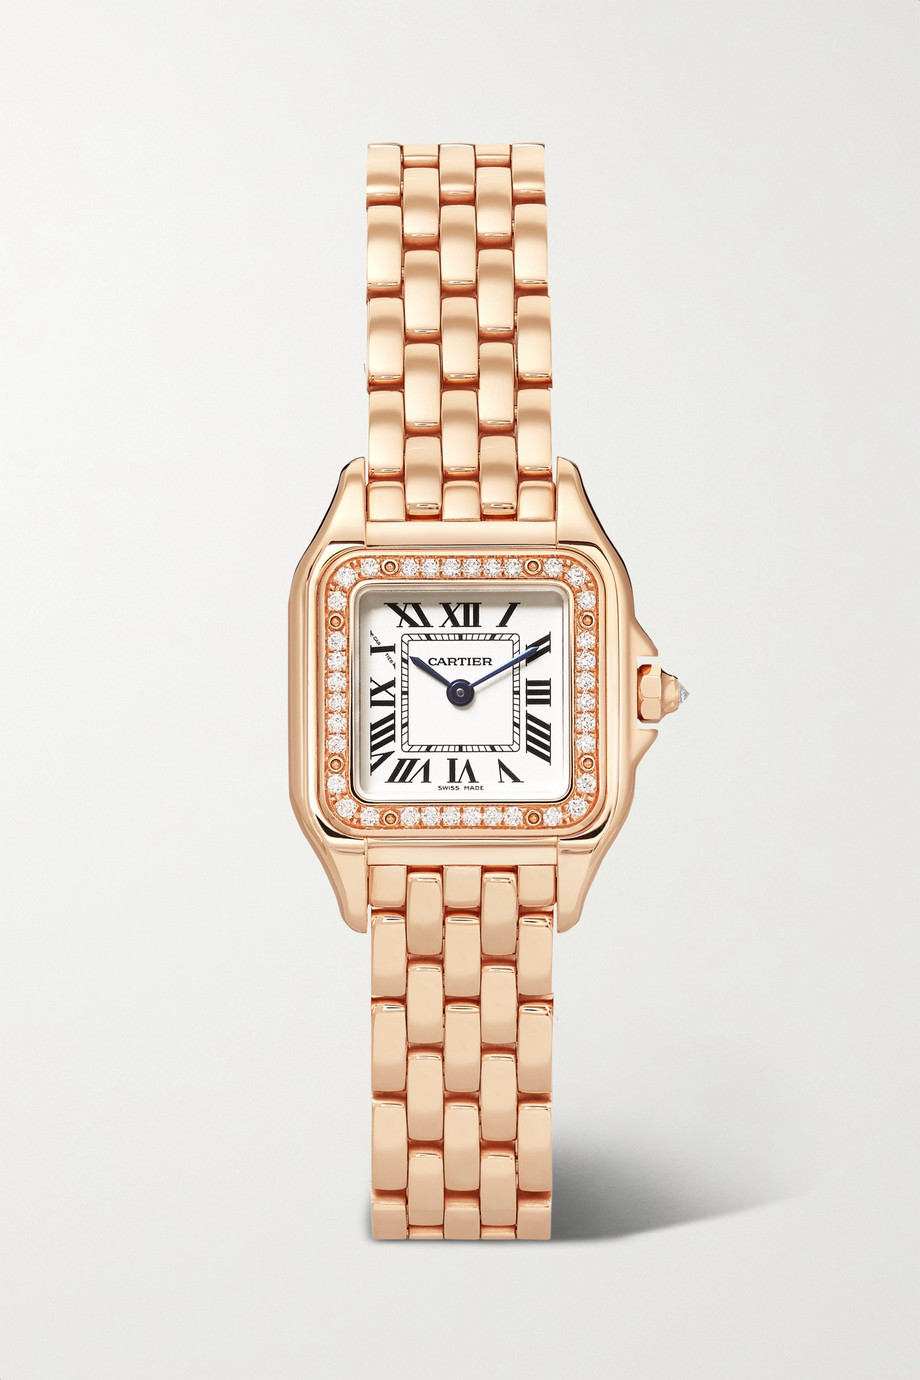 Cartier Panthère de Cartier 22mm small 18-karat pink gold diamond watch